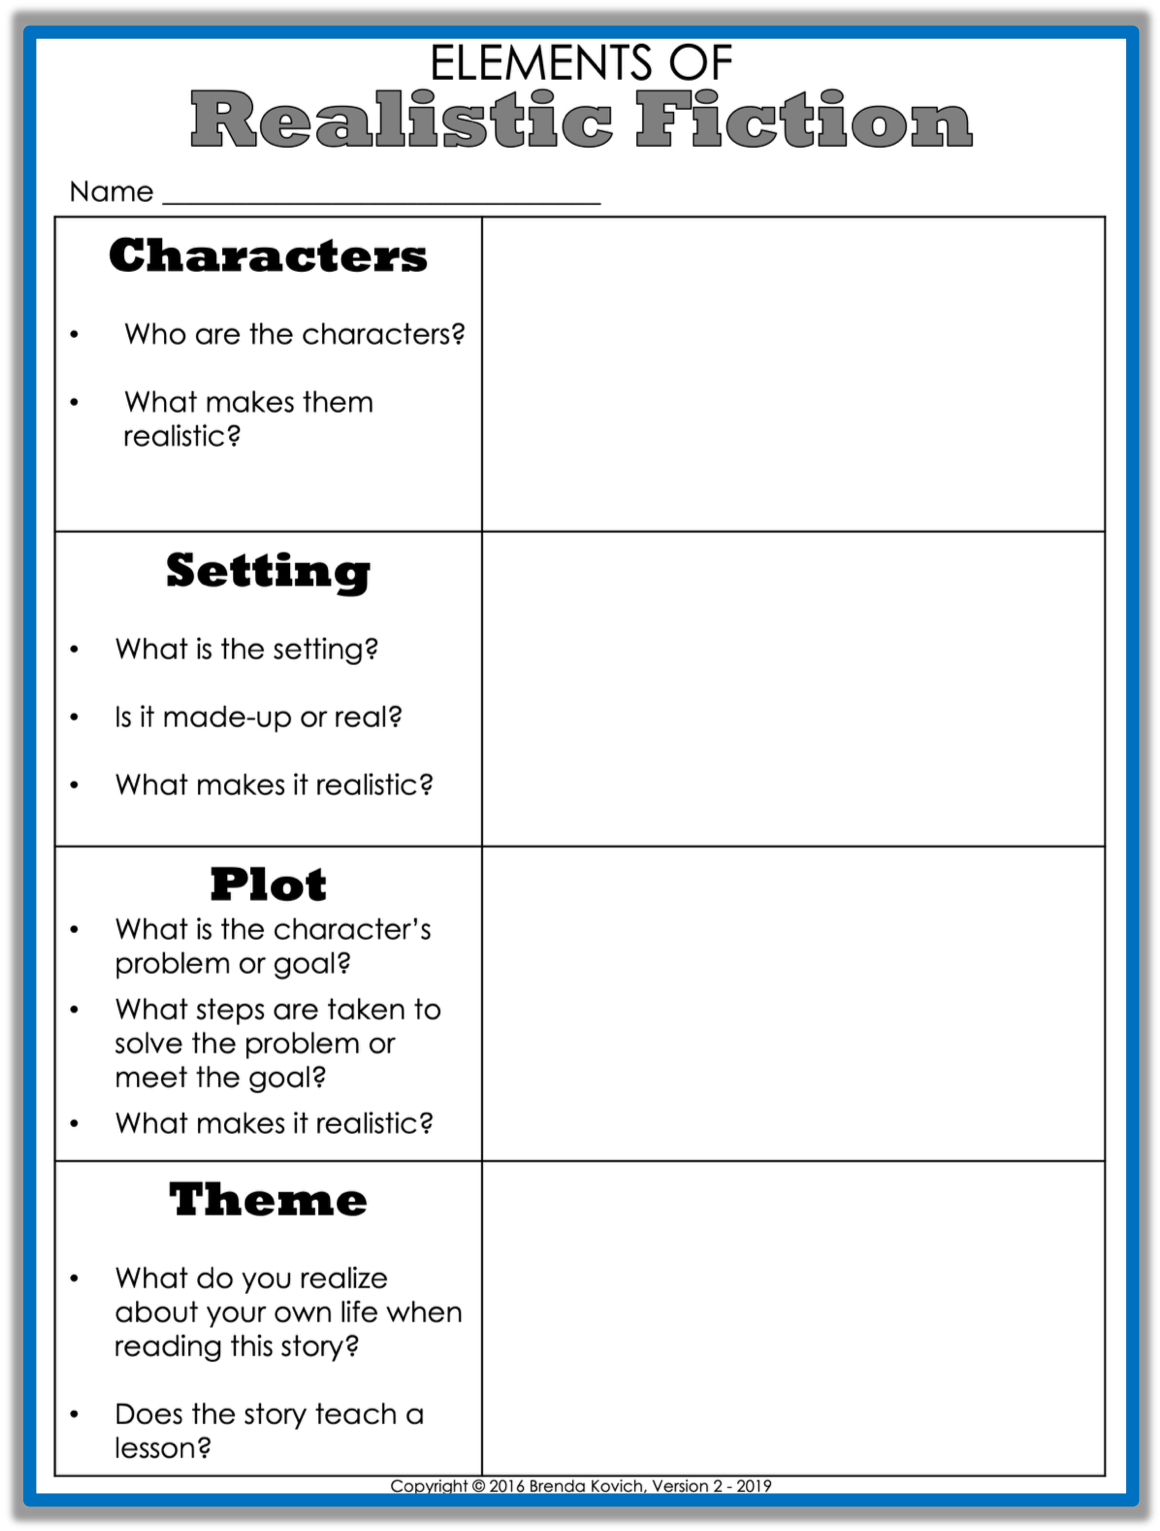 Teaching Realistic Fiction With Reading Activities For